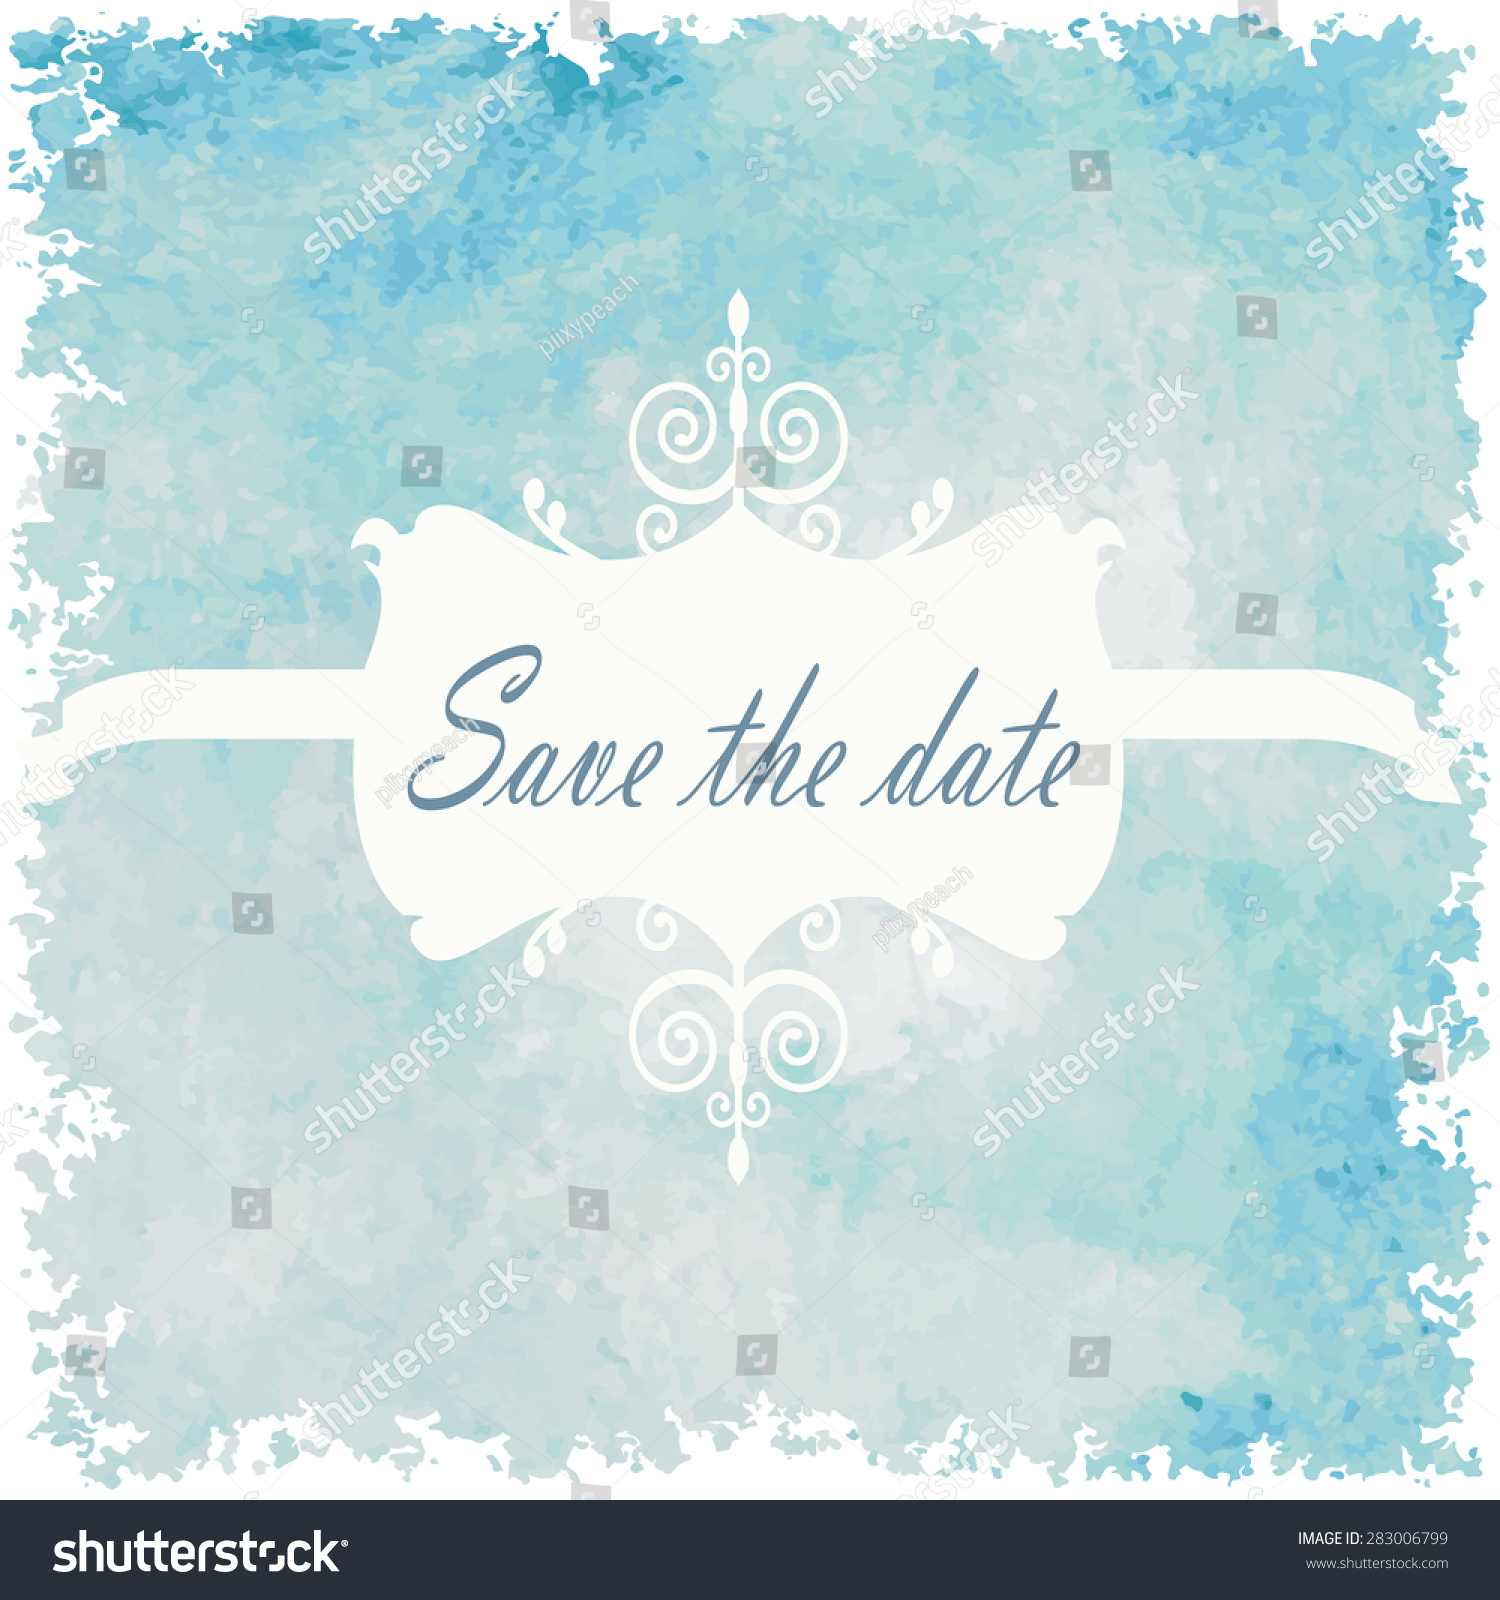 Suggestions Online | Images of Save The Date Logo Vintage